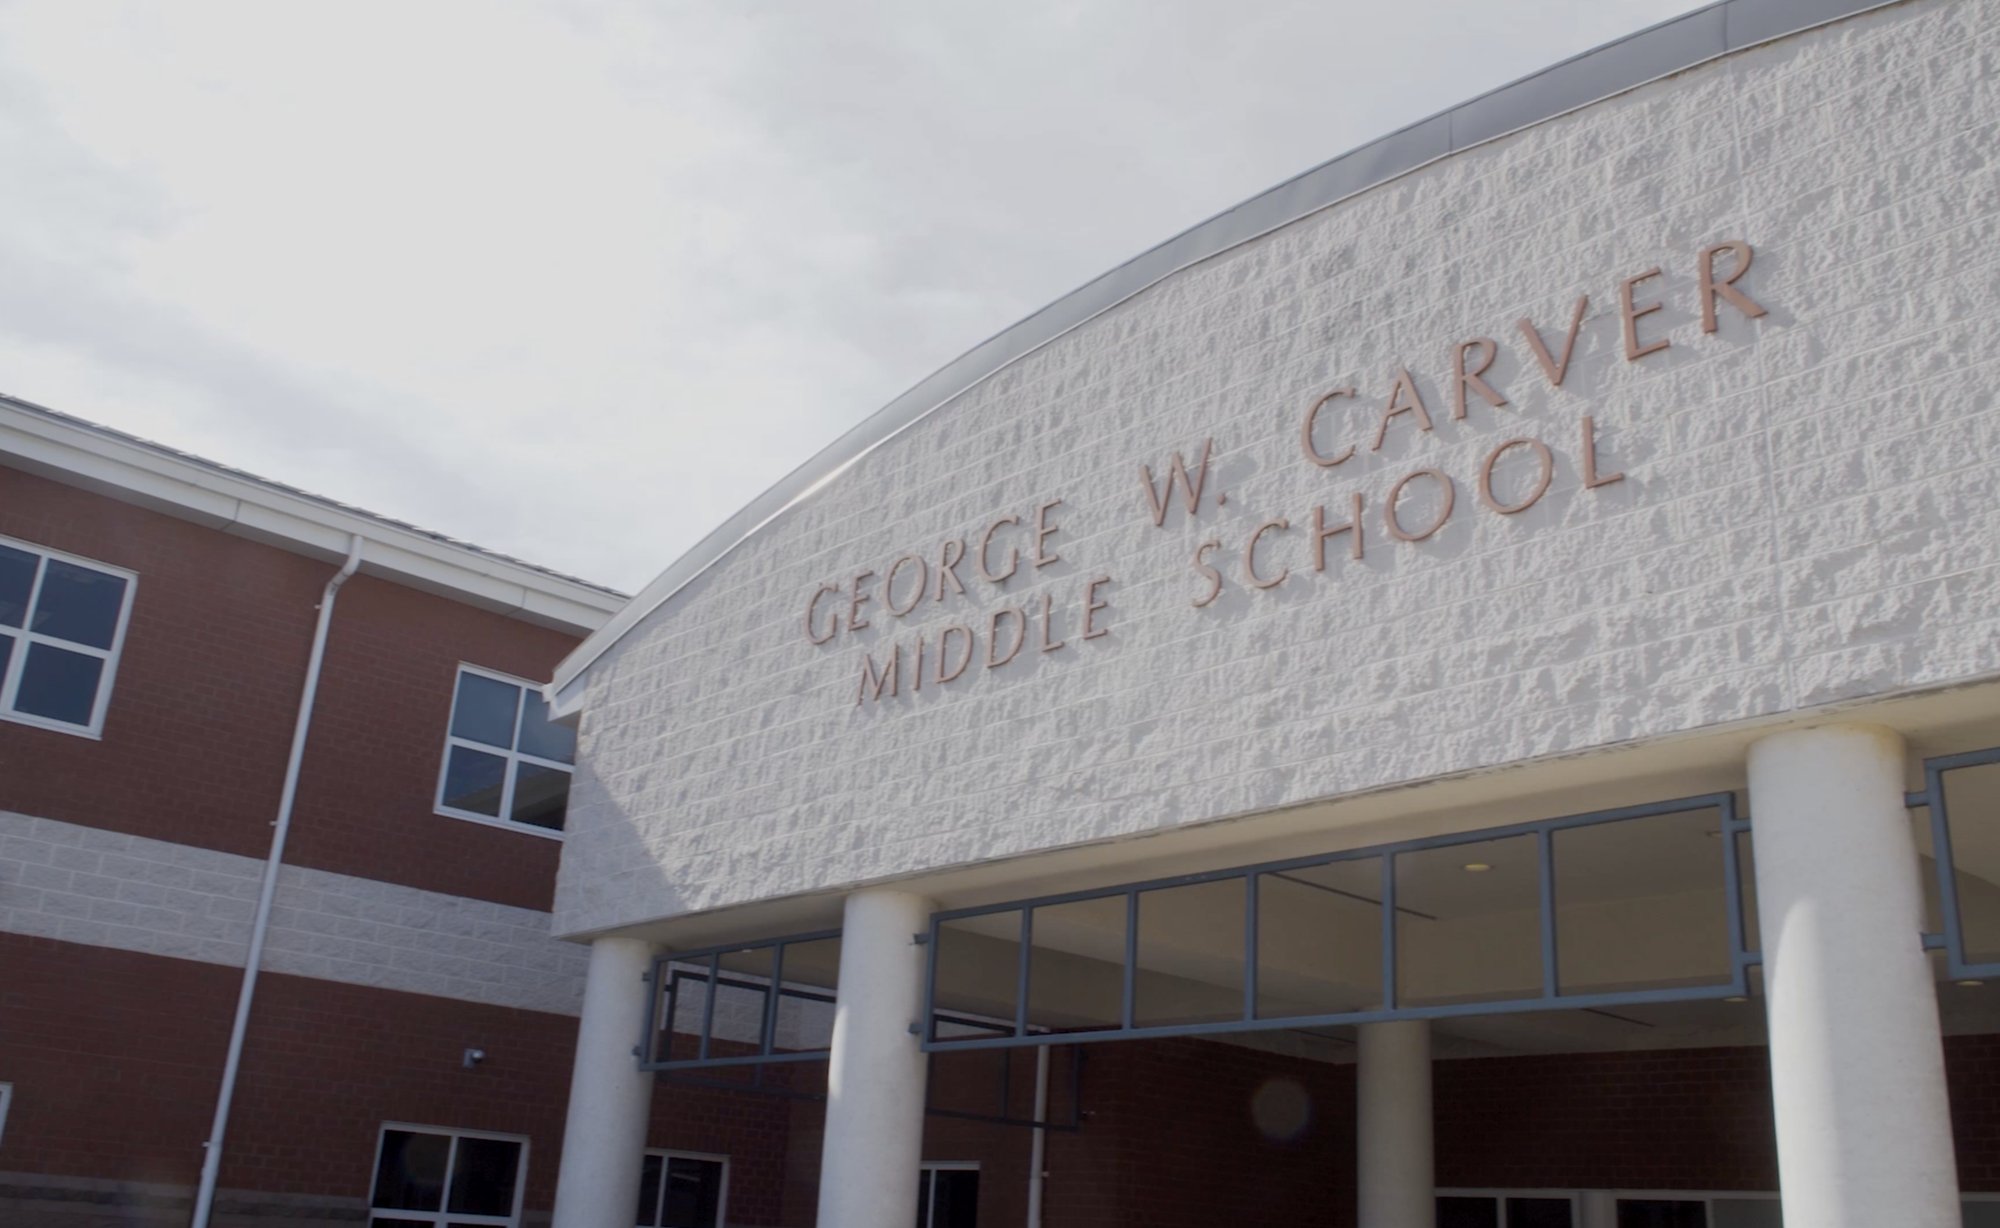 Carver Middle School